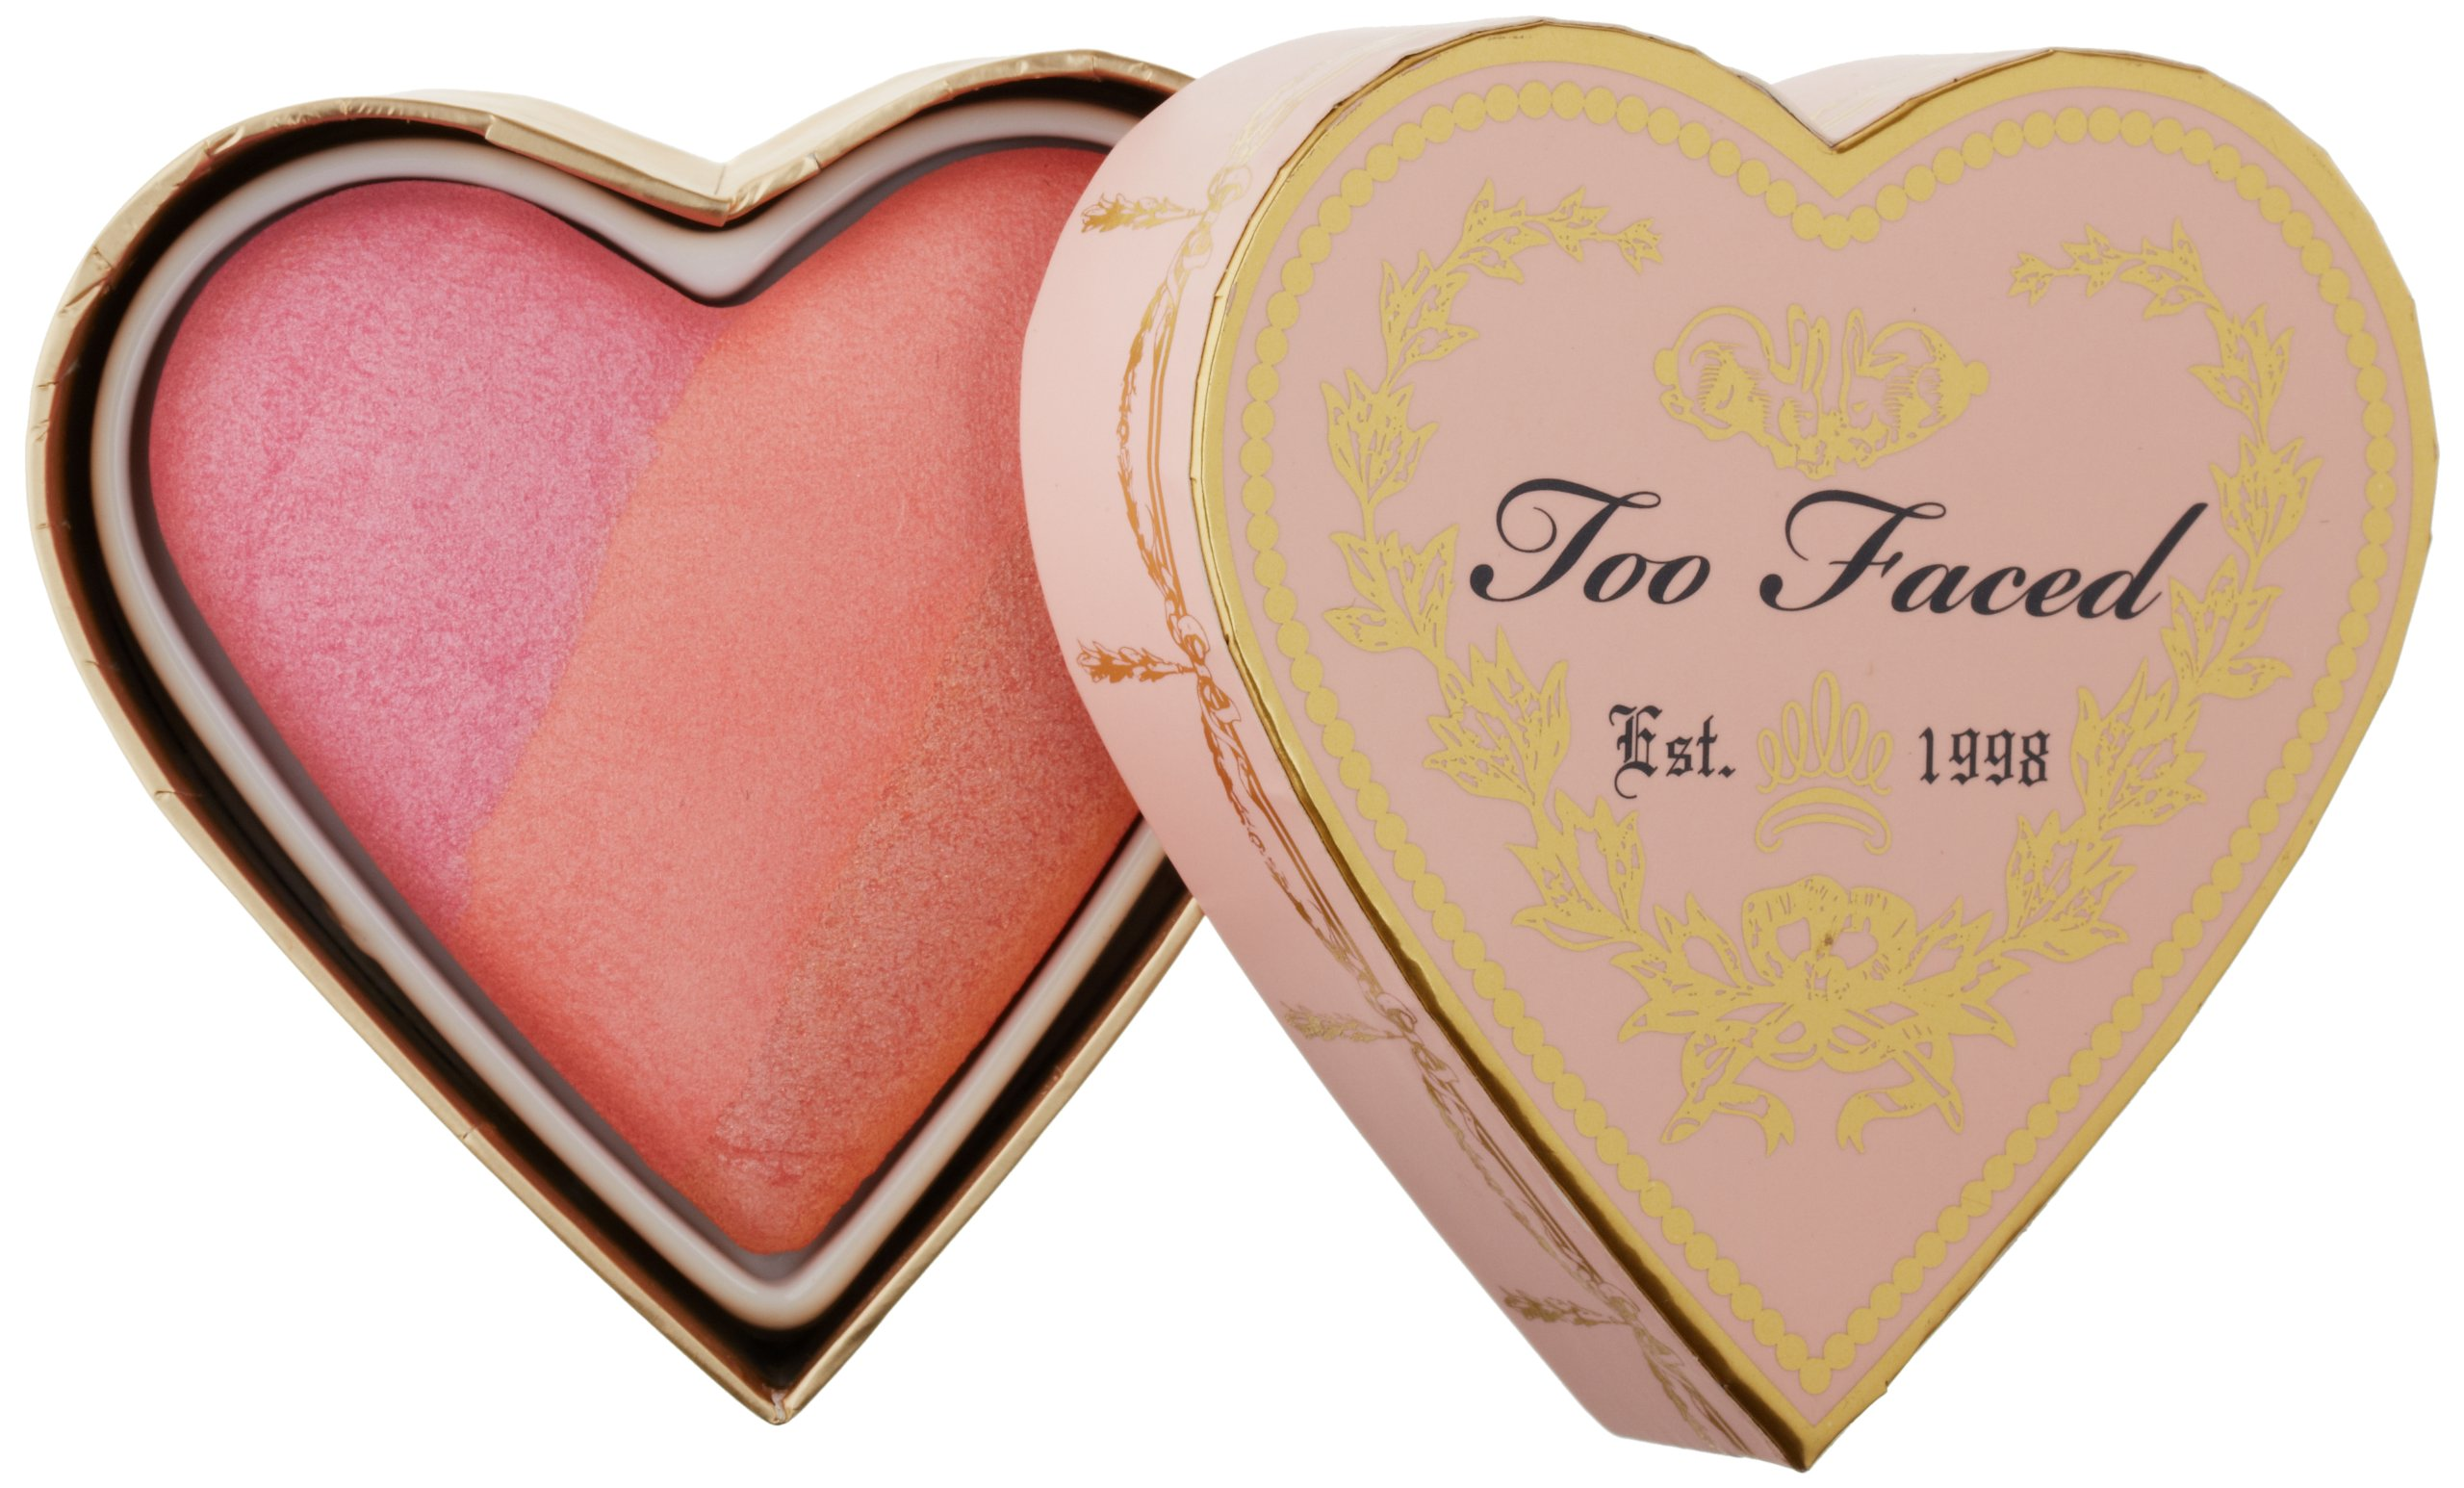 Too Faced Sweethearts Perfect Flush Blush in Candy Glow, 0.19 Ounce by Too Faced